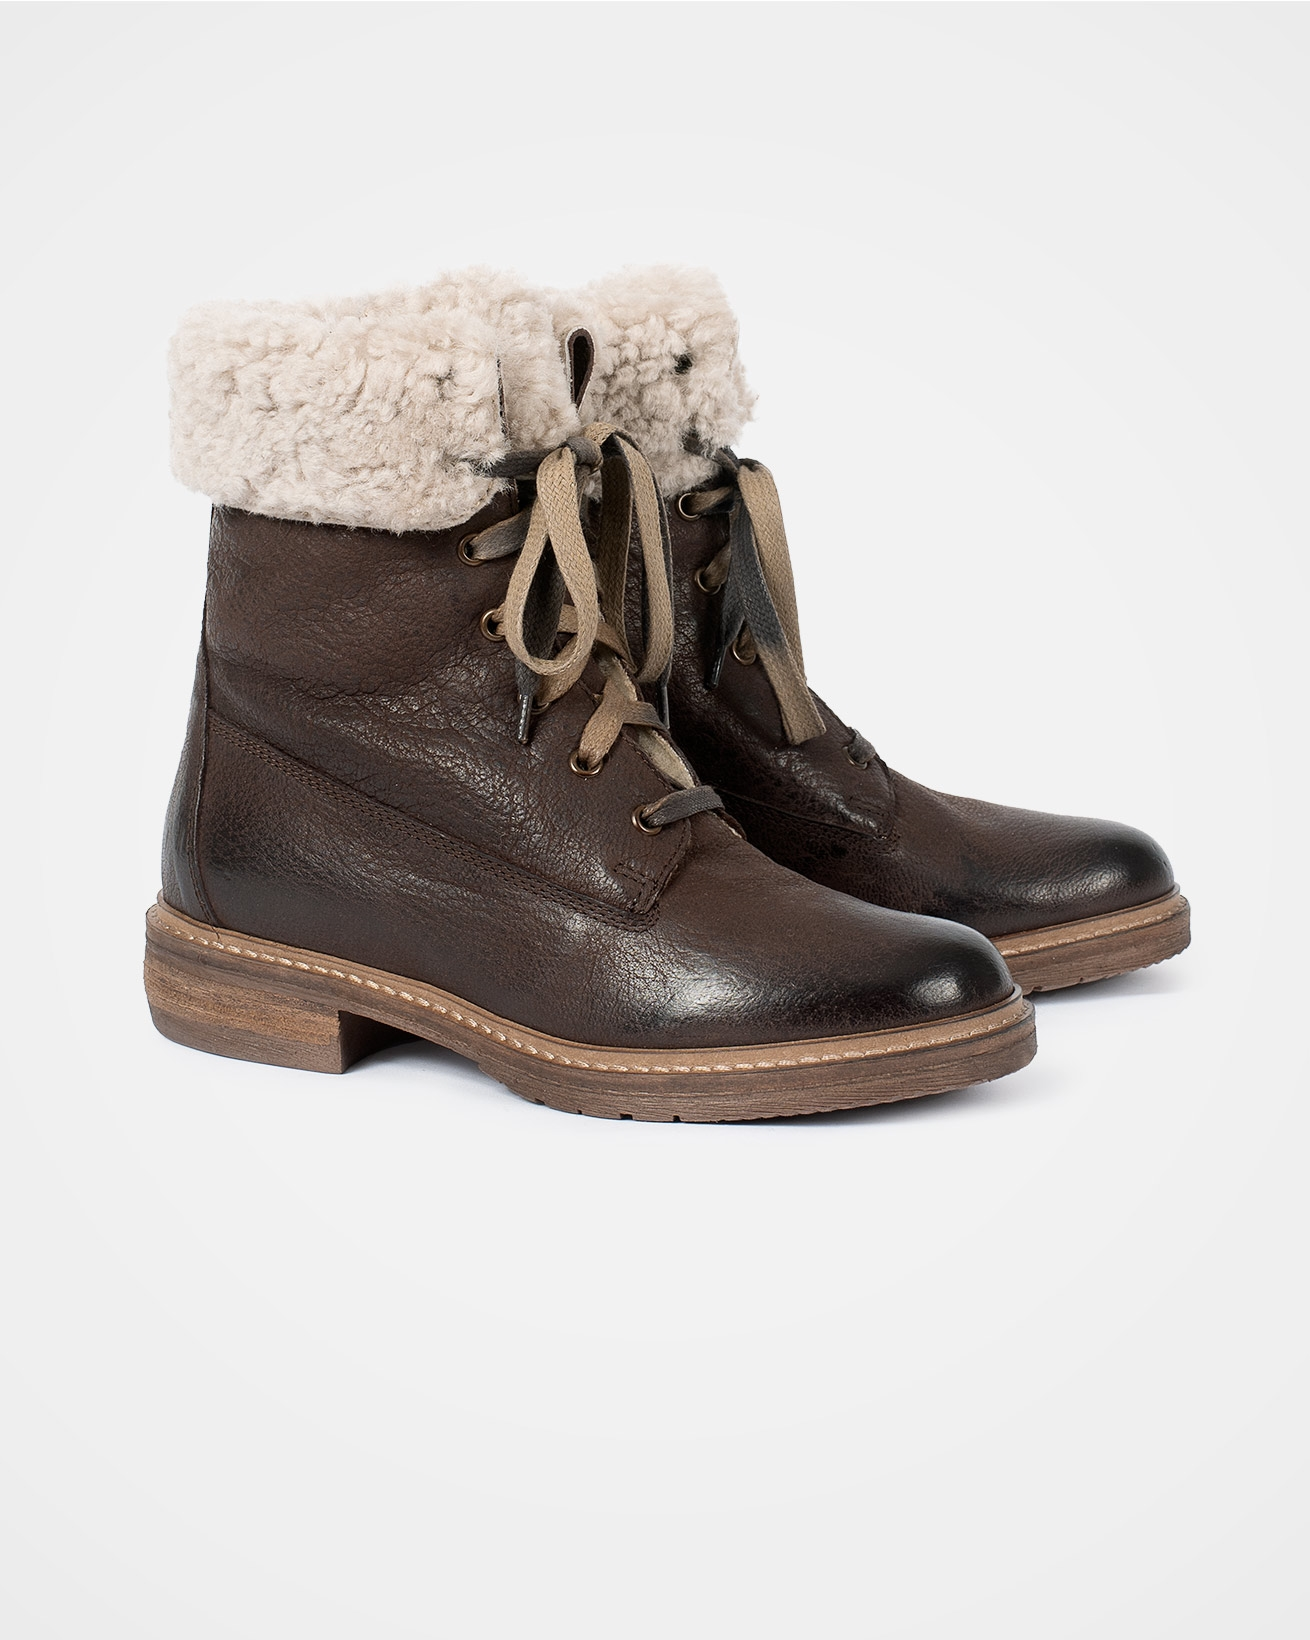 Fold Down Lace Up Boot - Size 40 - Tanners Brown - 2055